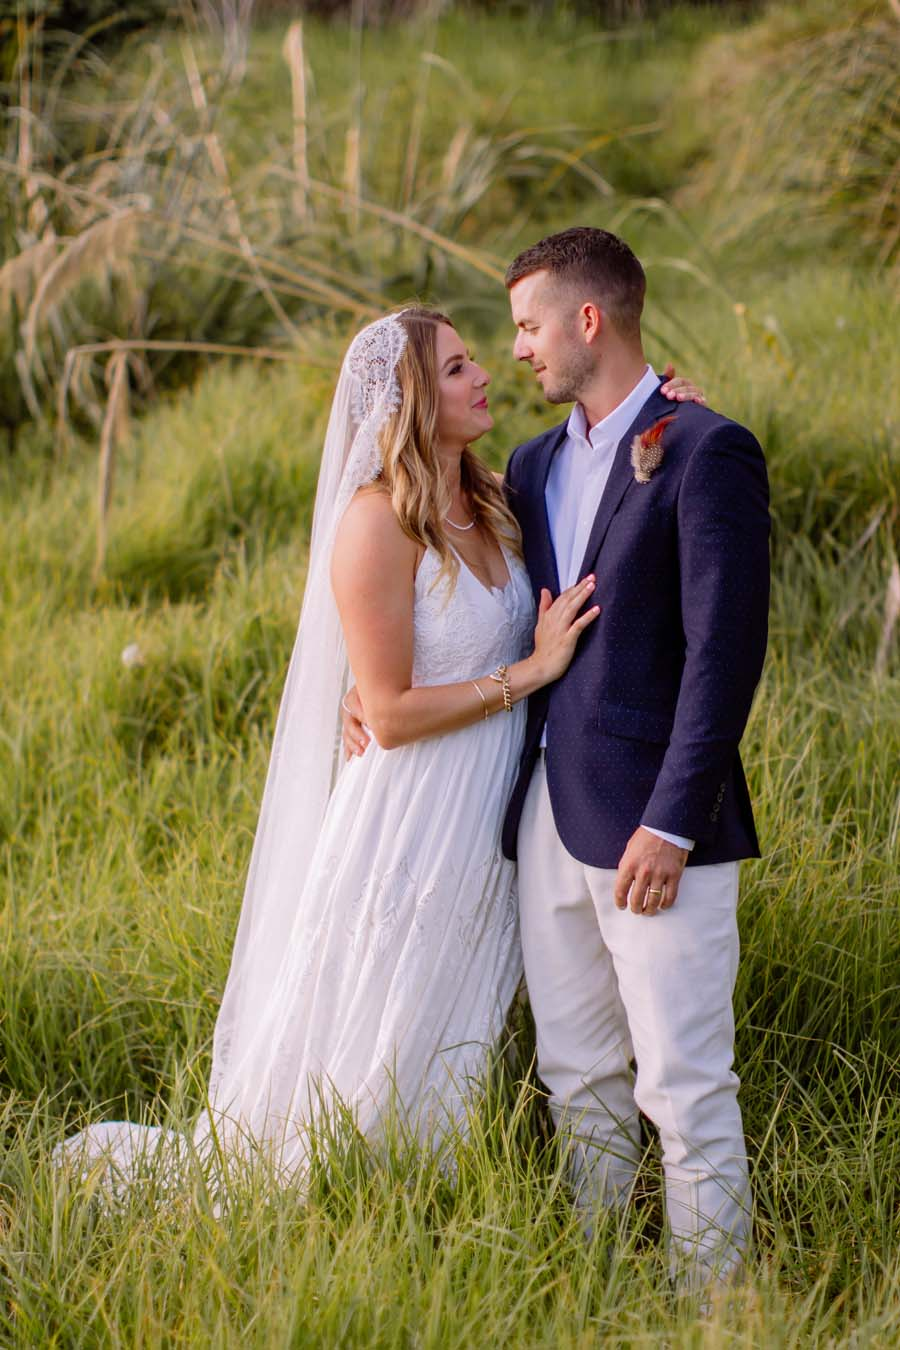 nz_wedding_photographer_castaways_waiuku-2170